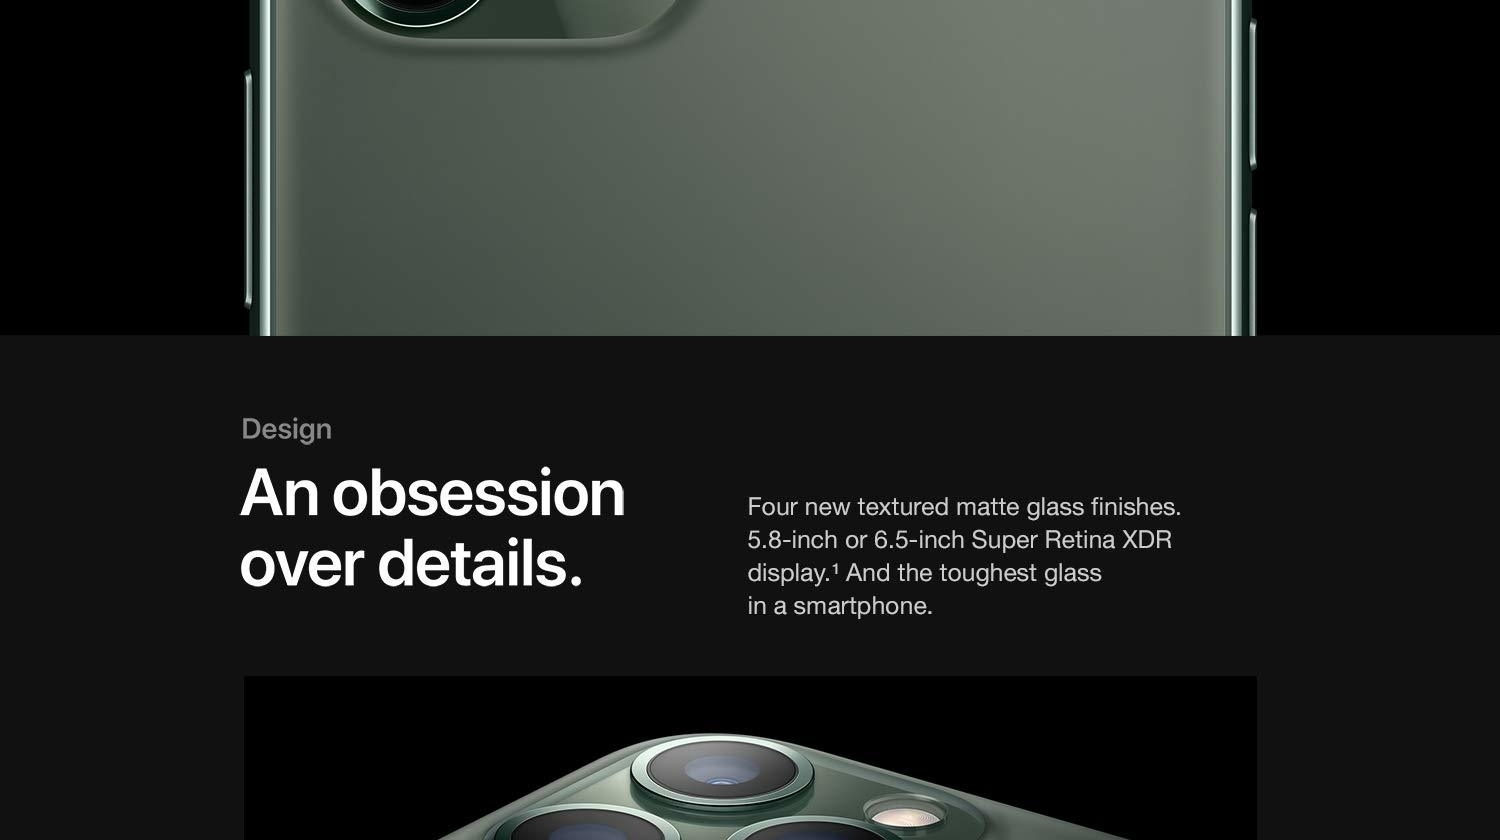 An obsession over details. Four new textured matte glass finishes. 5.8-inch or 6.5-inch Super Retina XDR display. And the toughest glass in a smartphone.